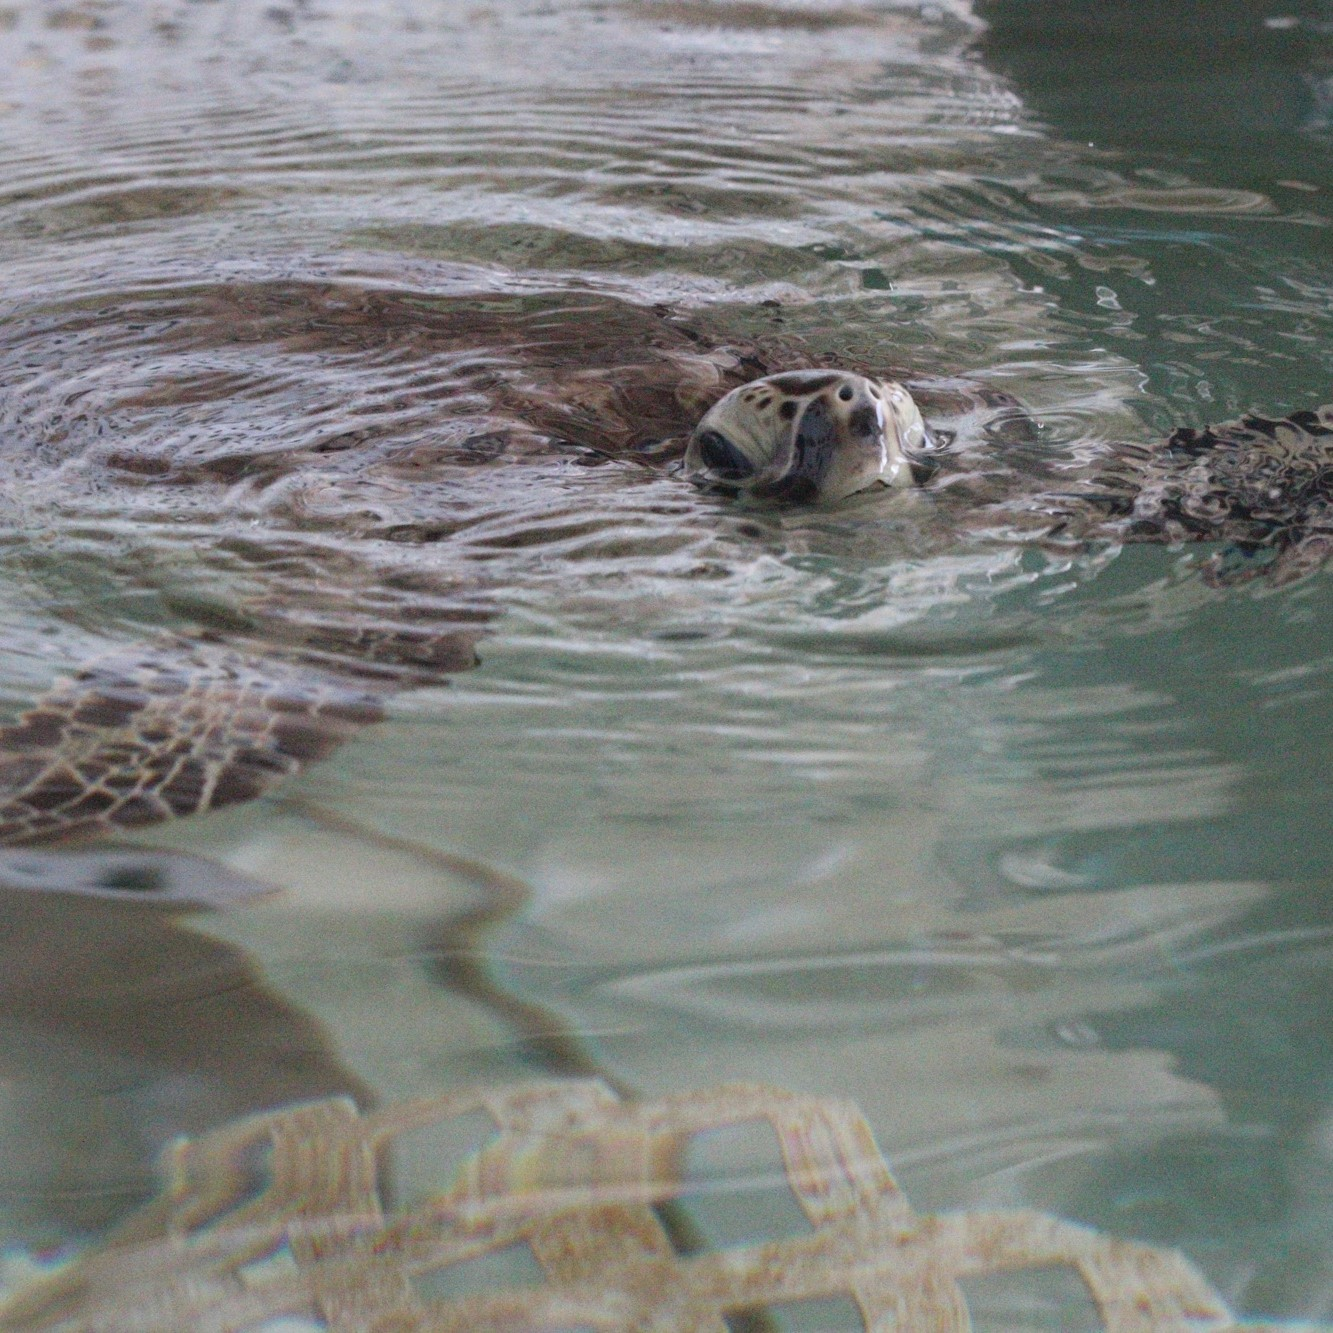 Sea turtle picture taken by the Palm Coast Observer at the Sea Turtle Hospital